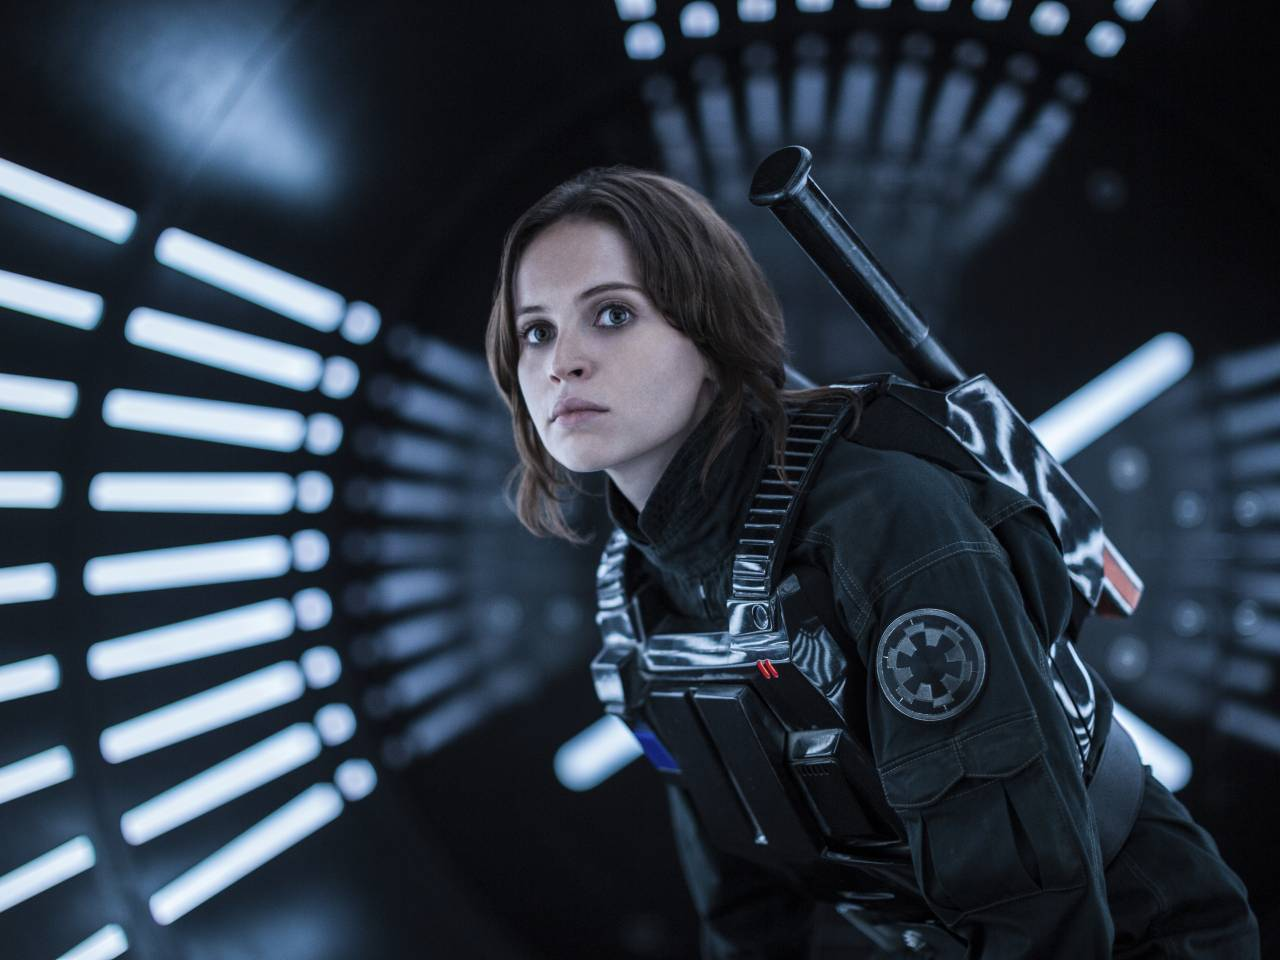 film-review-rogue-one_jpeg-1280x960.jpg